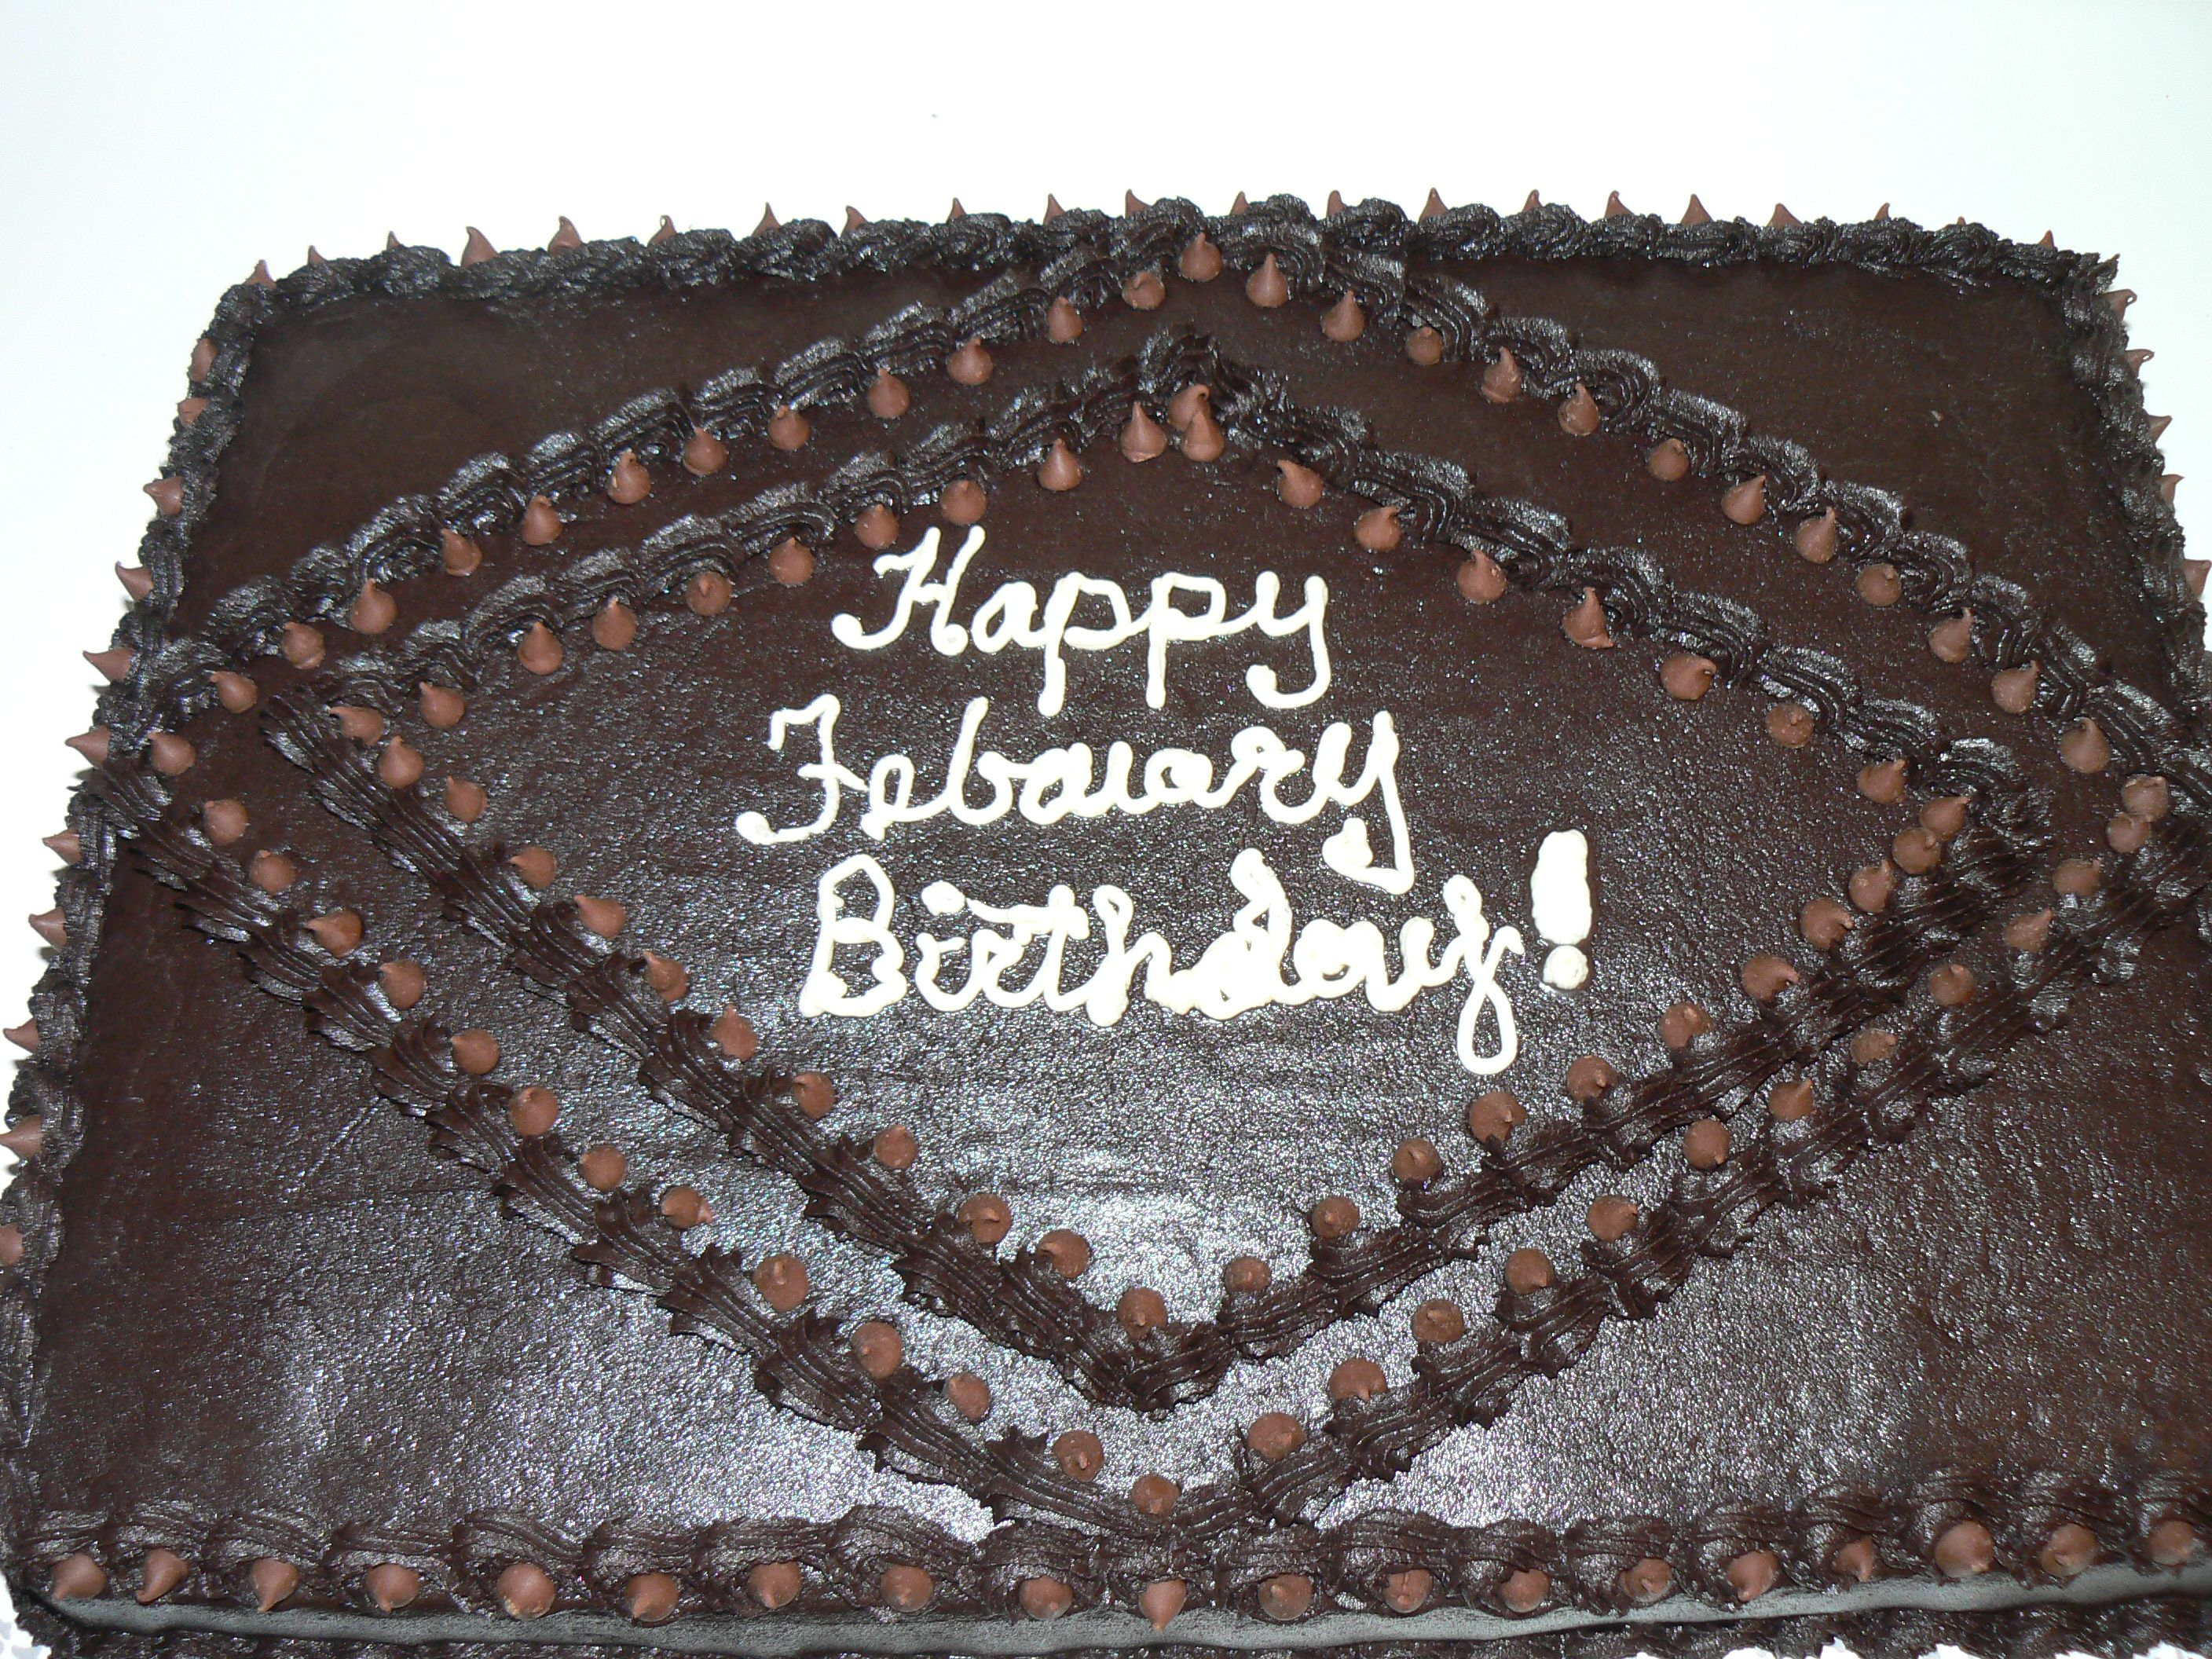 February Birthdays Cake